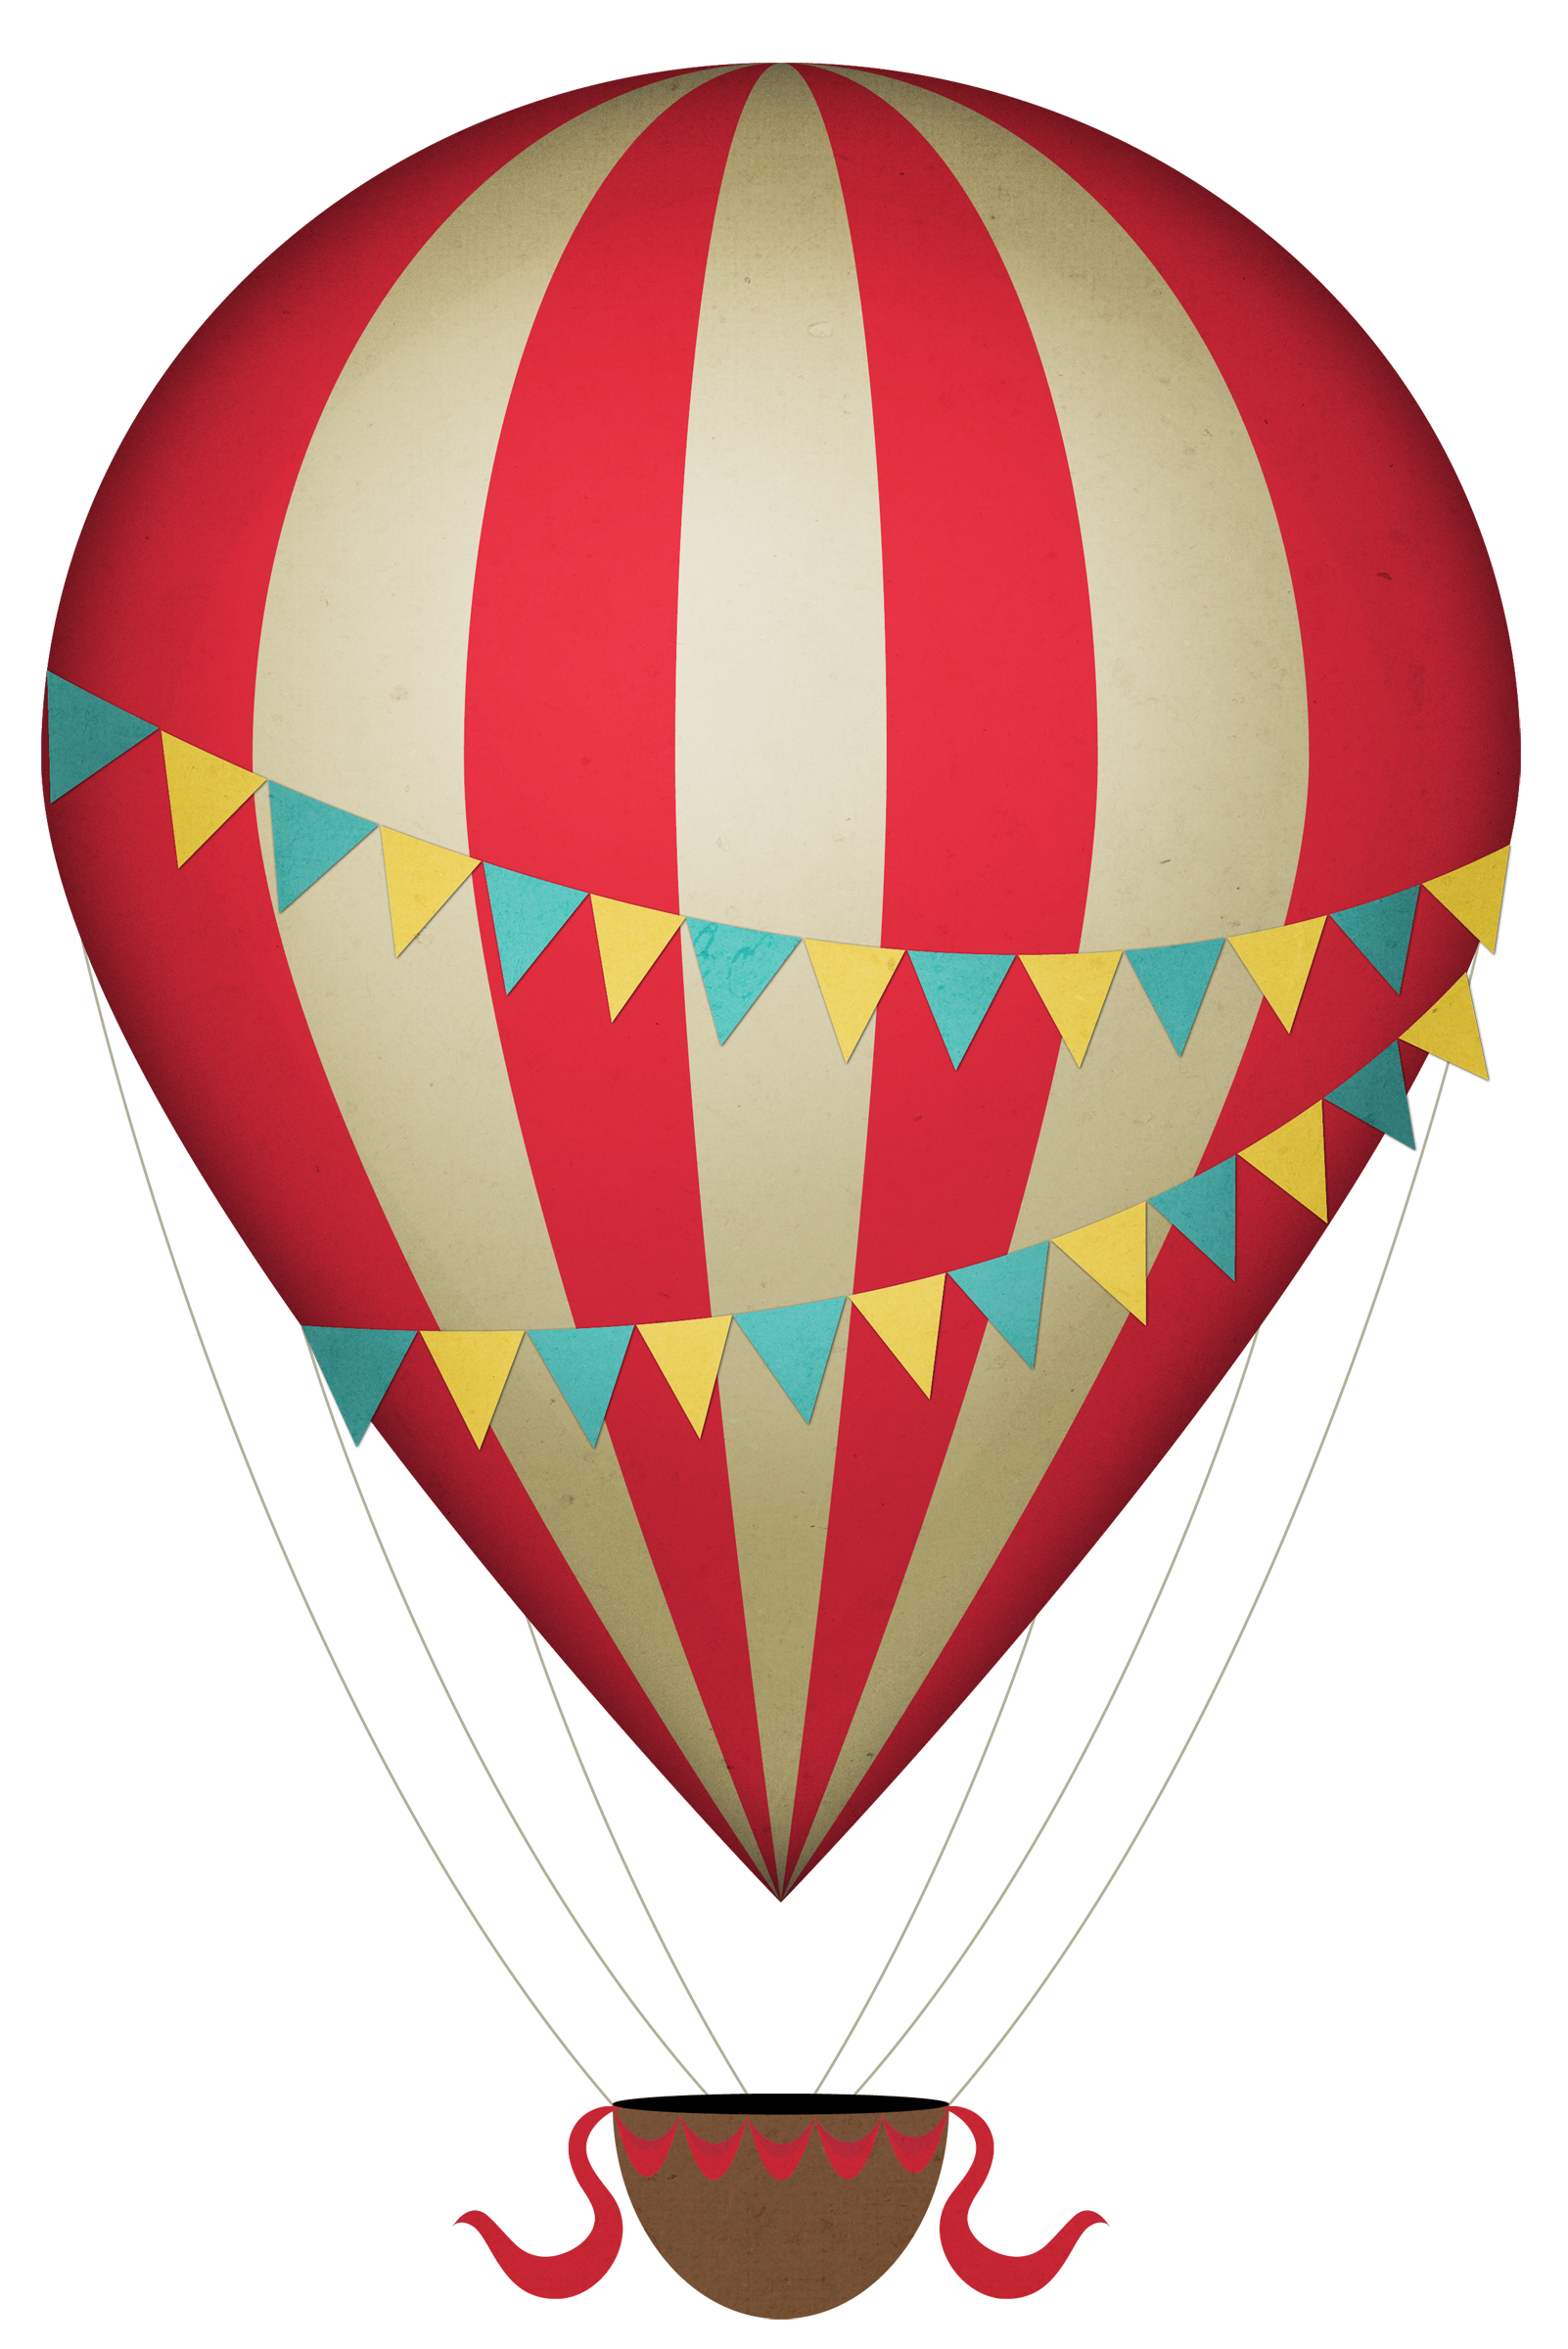 Vintage up inspiration vintagehotairballoonclipart. Hearts clipart hot air balloon